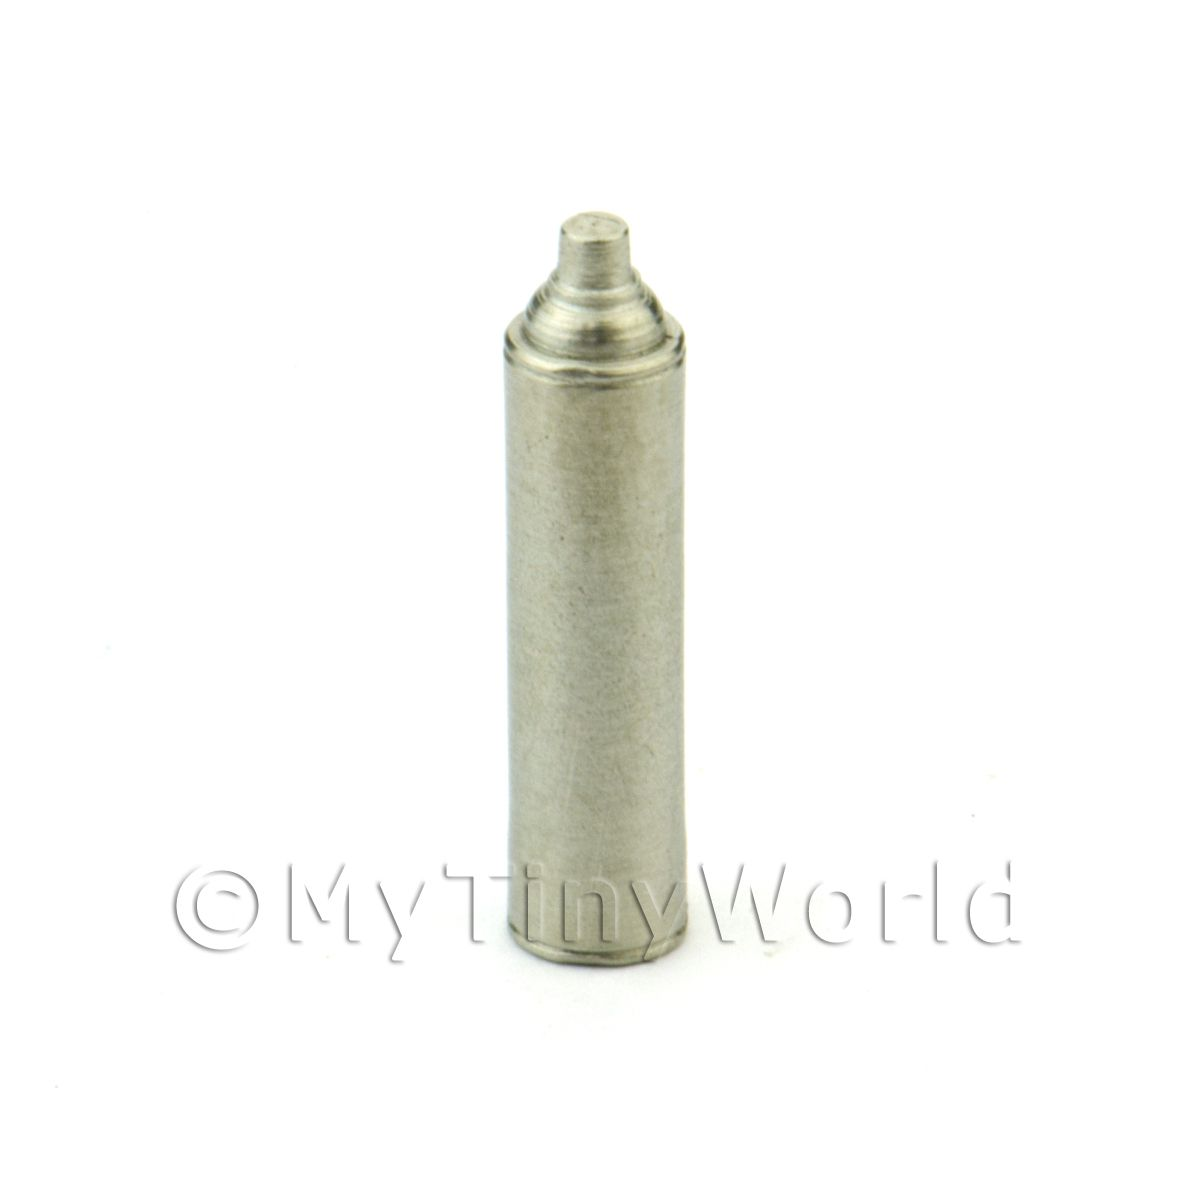 Dolls House Miniature White Metal Modern Aerosol Can